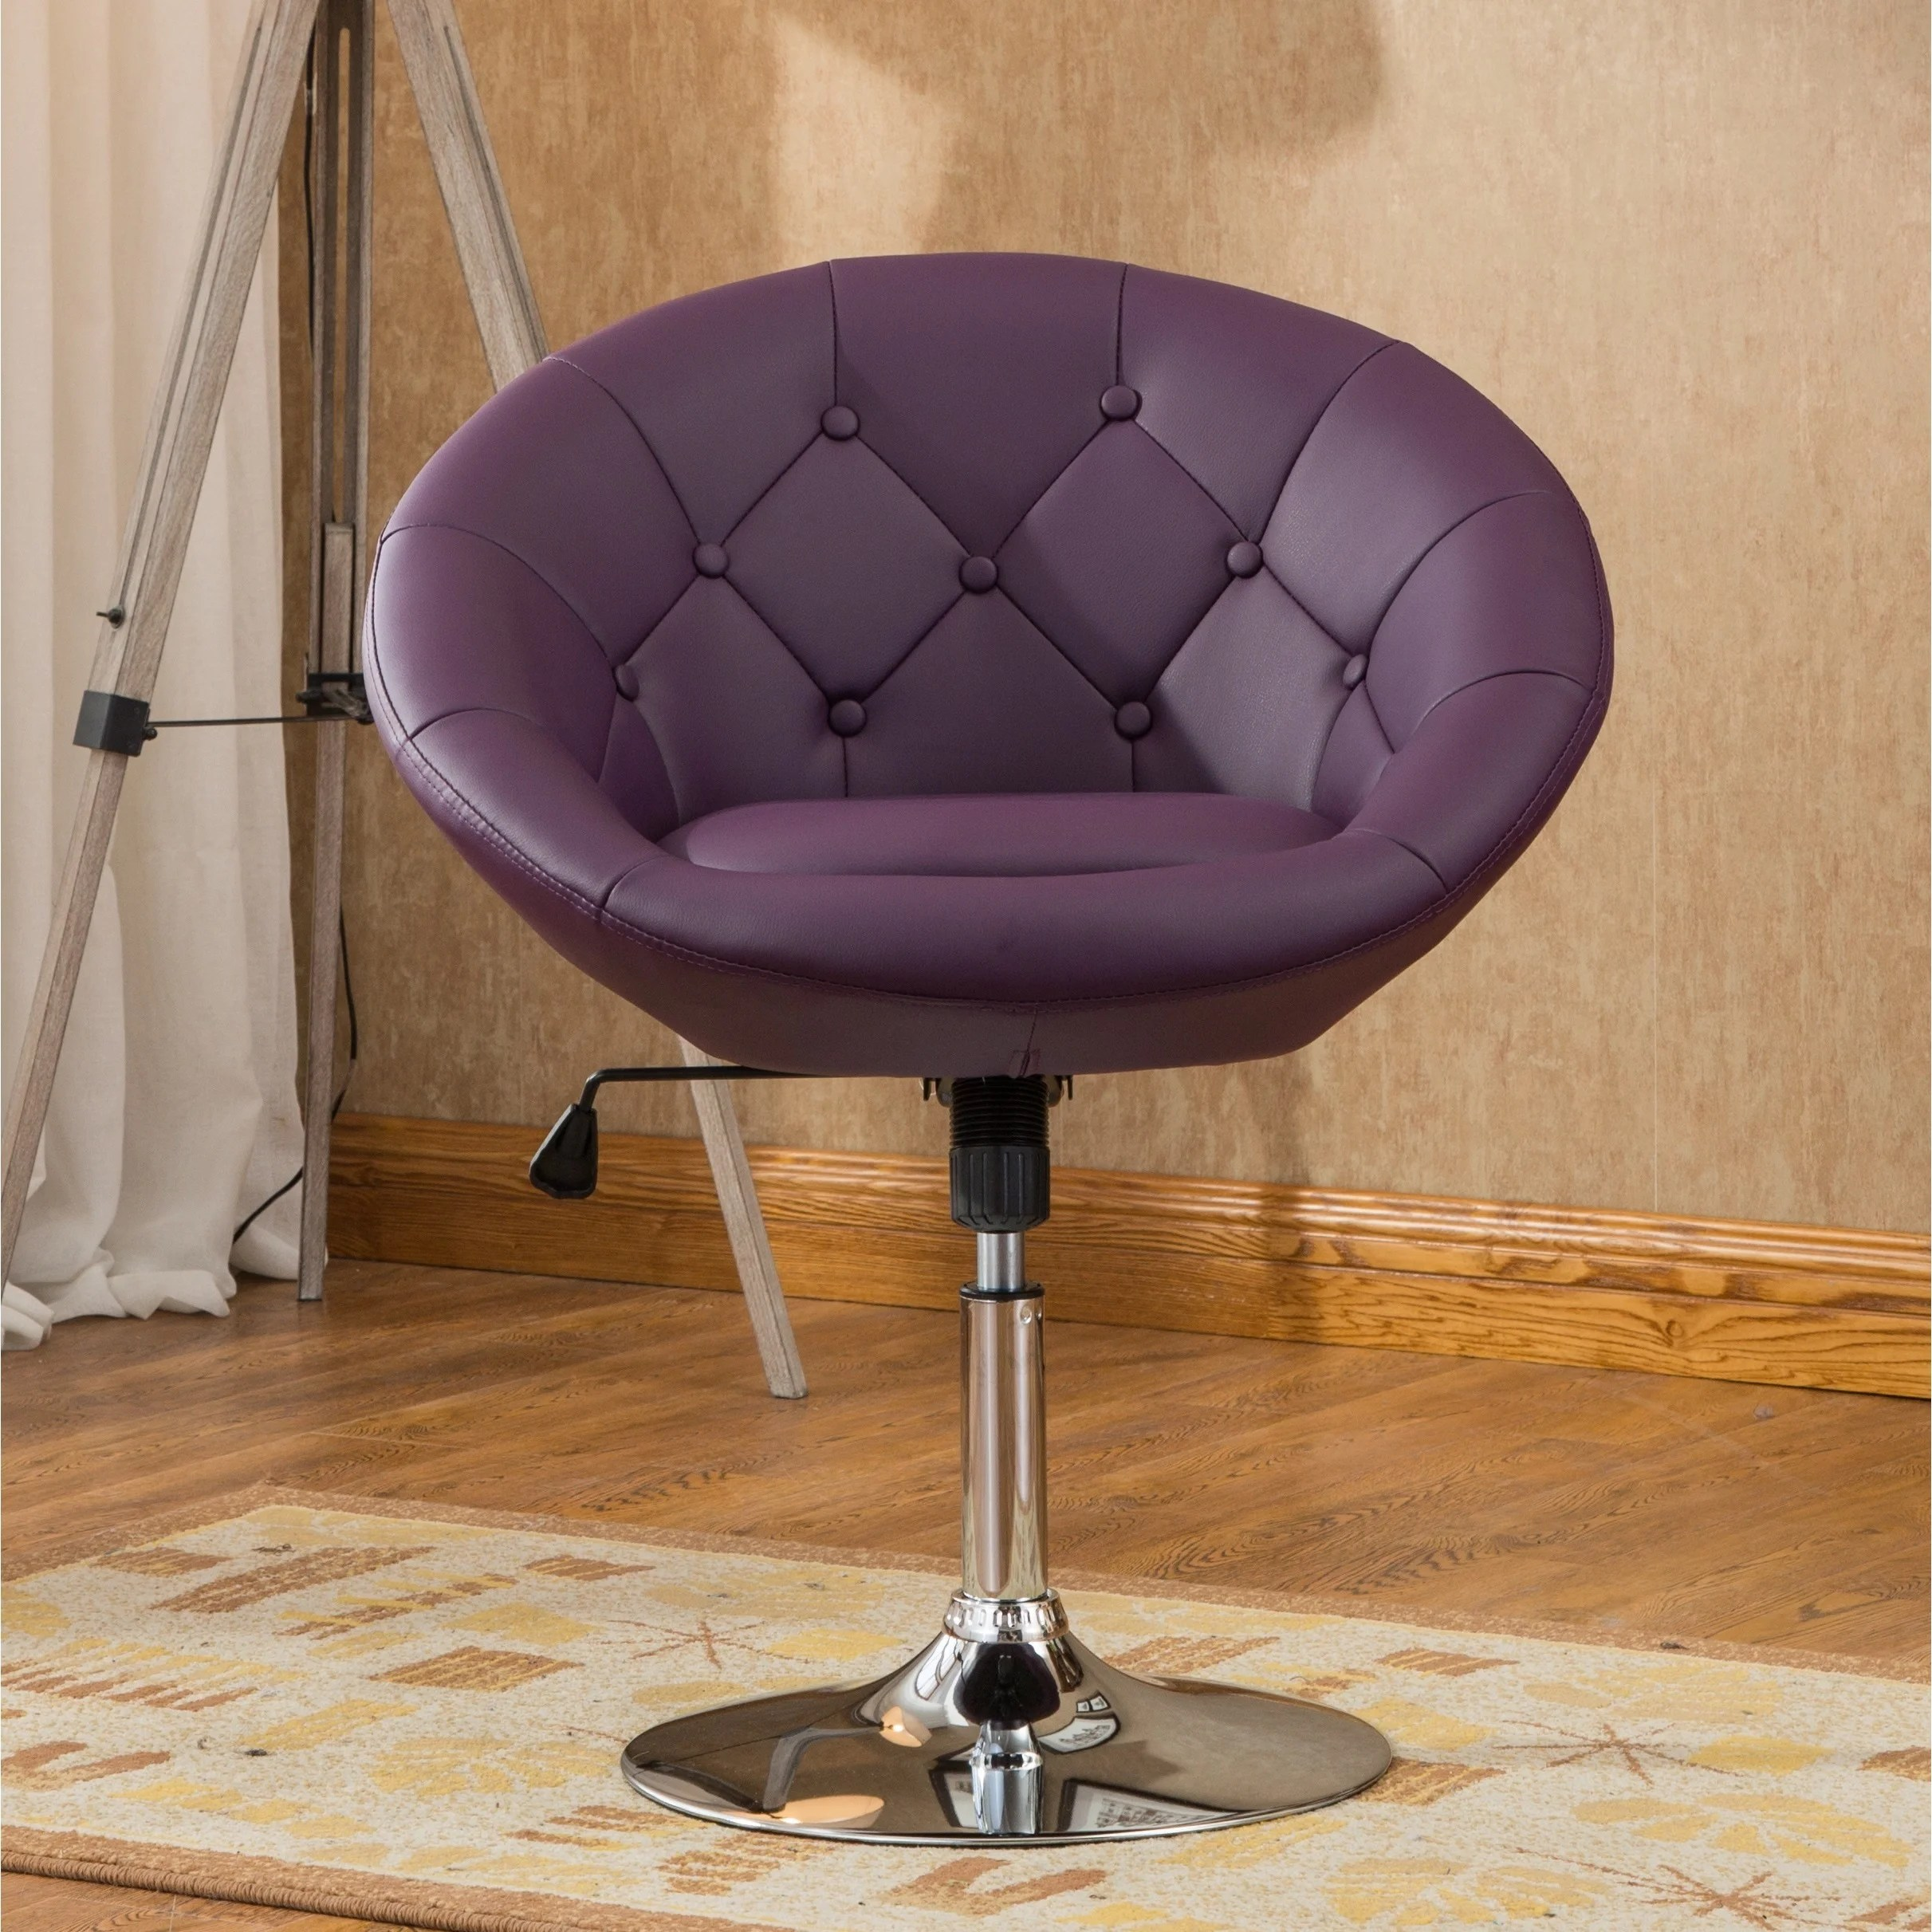 Contemporary Swivel Chairs Roundhill Furniture Noas Contemporary Round Tufted Back